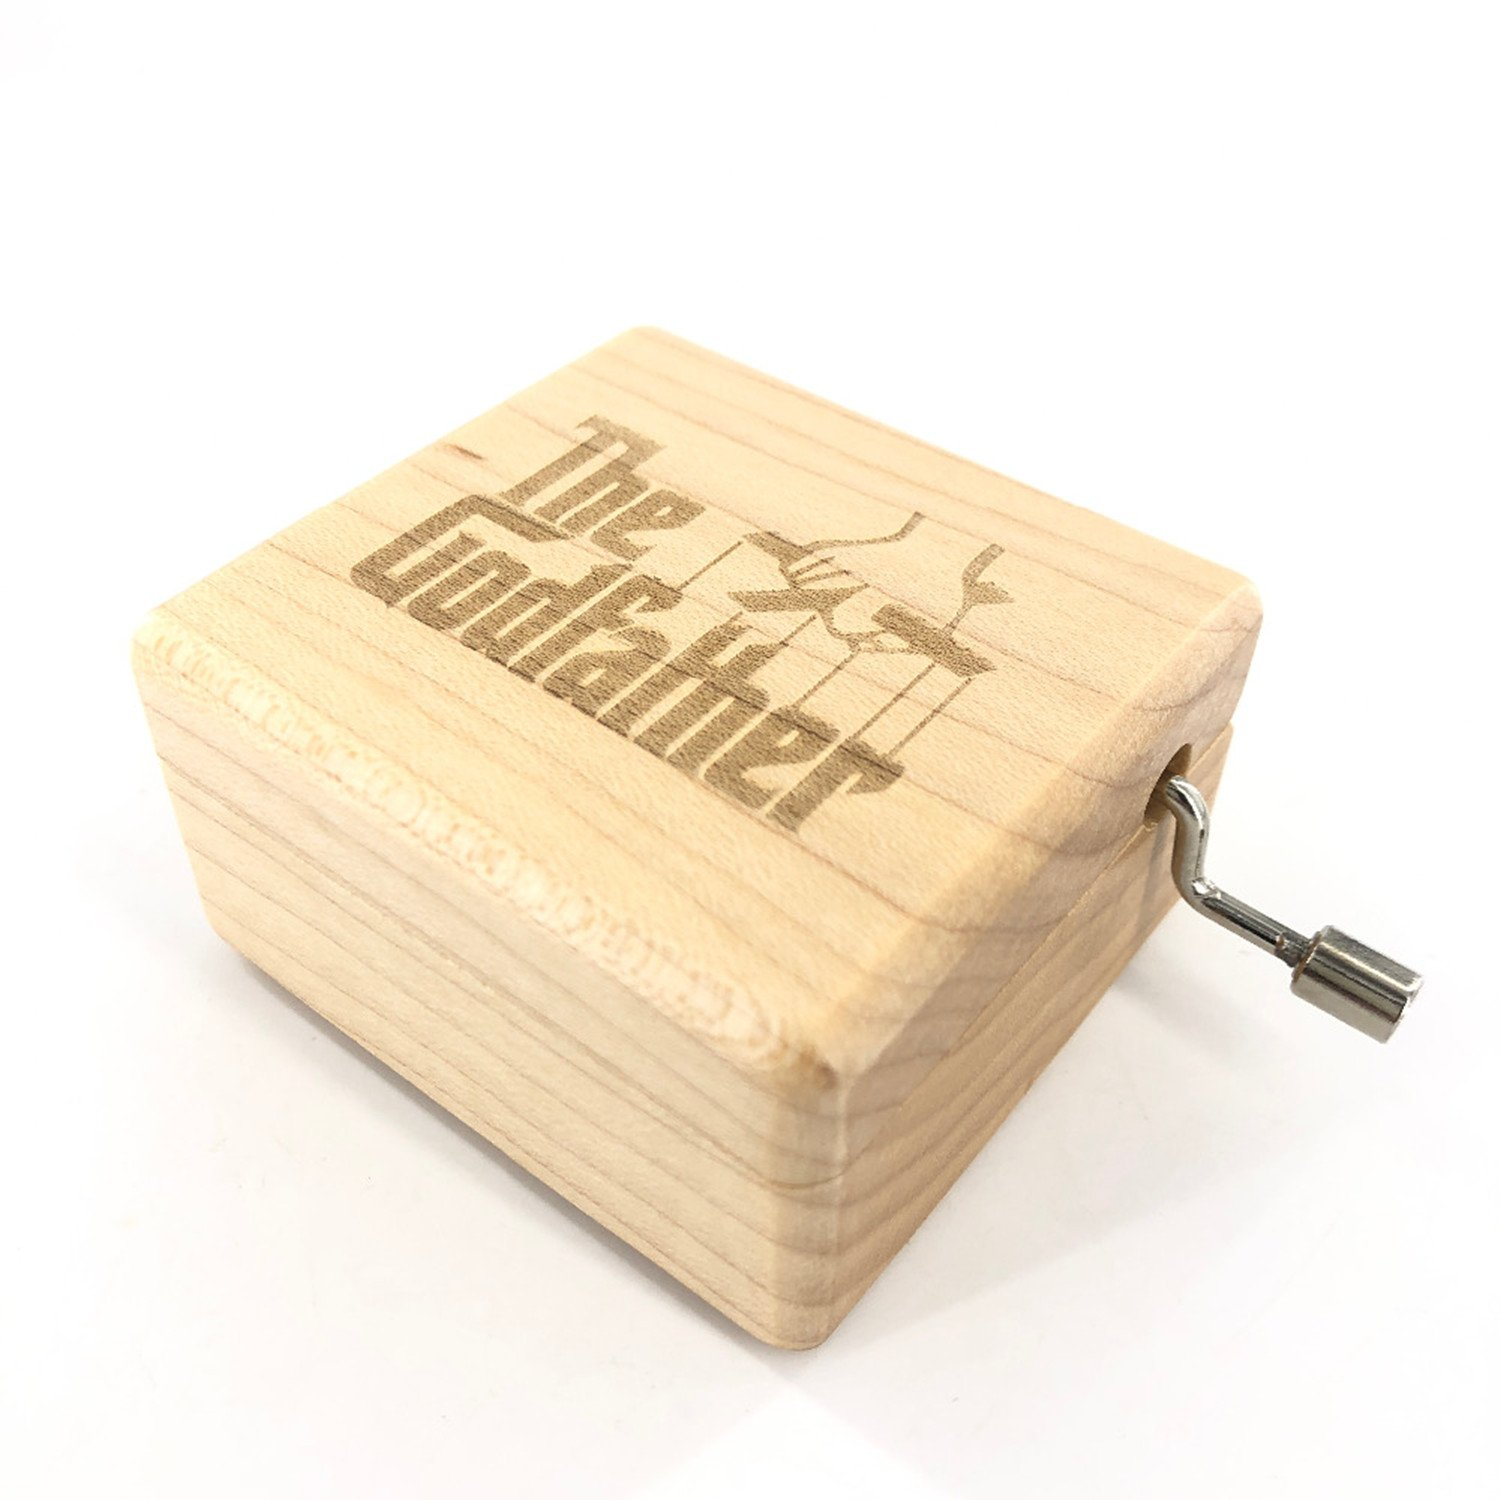 The Godfather Music Box - 18 Note Mechanism Antique Laser Engrave Wood Musical Box Crafts Melody Castle in Hand by Huntmic (Image #2)